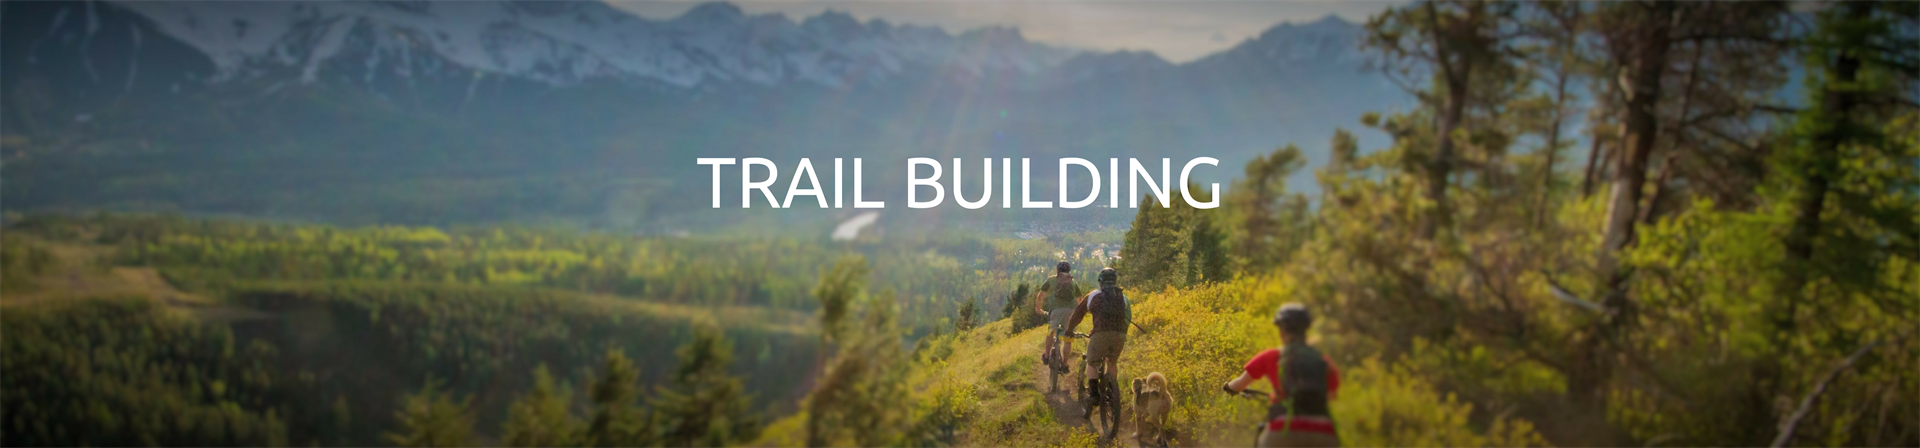 trail building rules